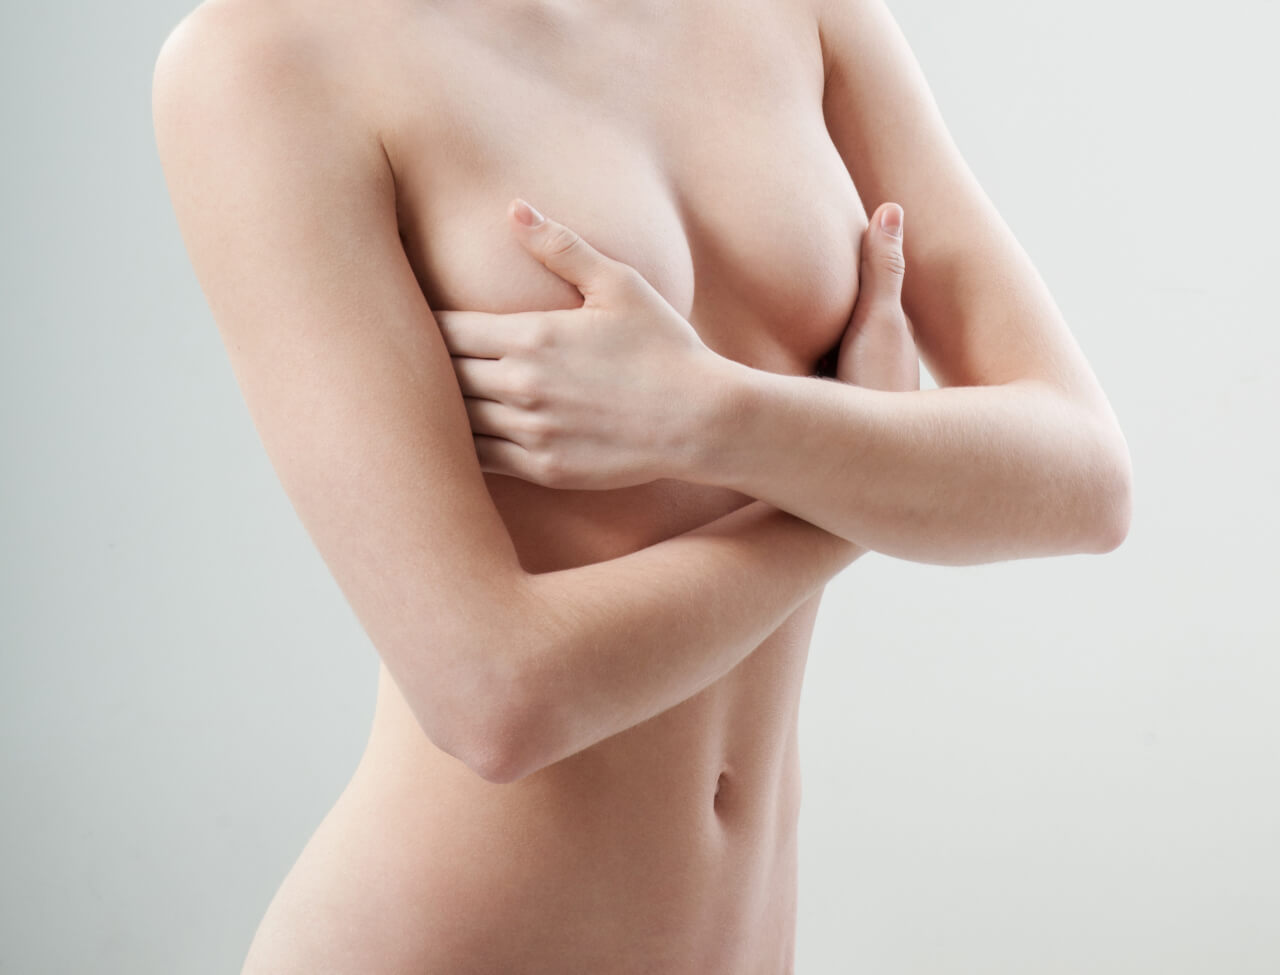 Breast Implant Removal without Replacement